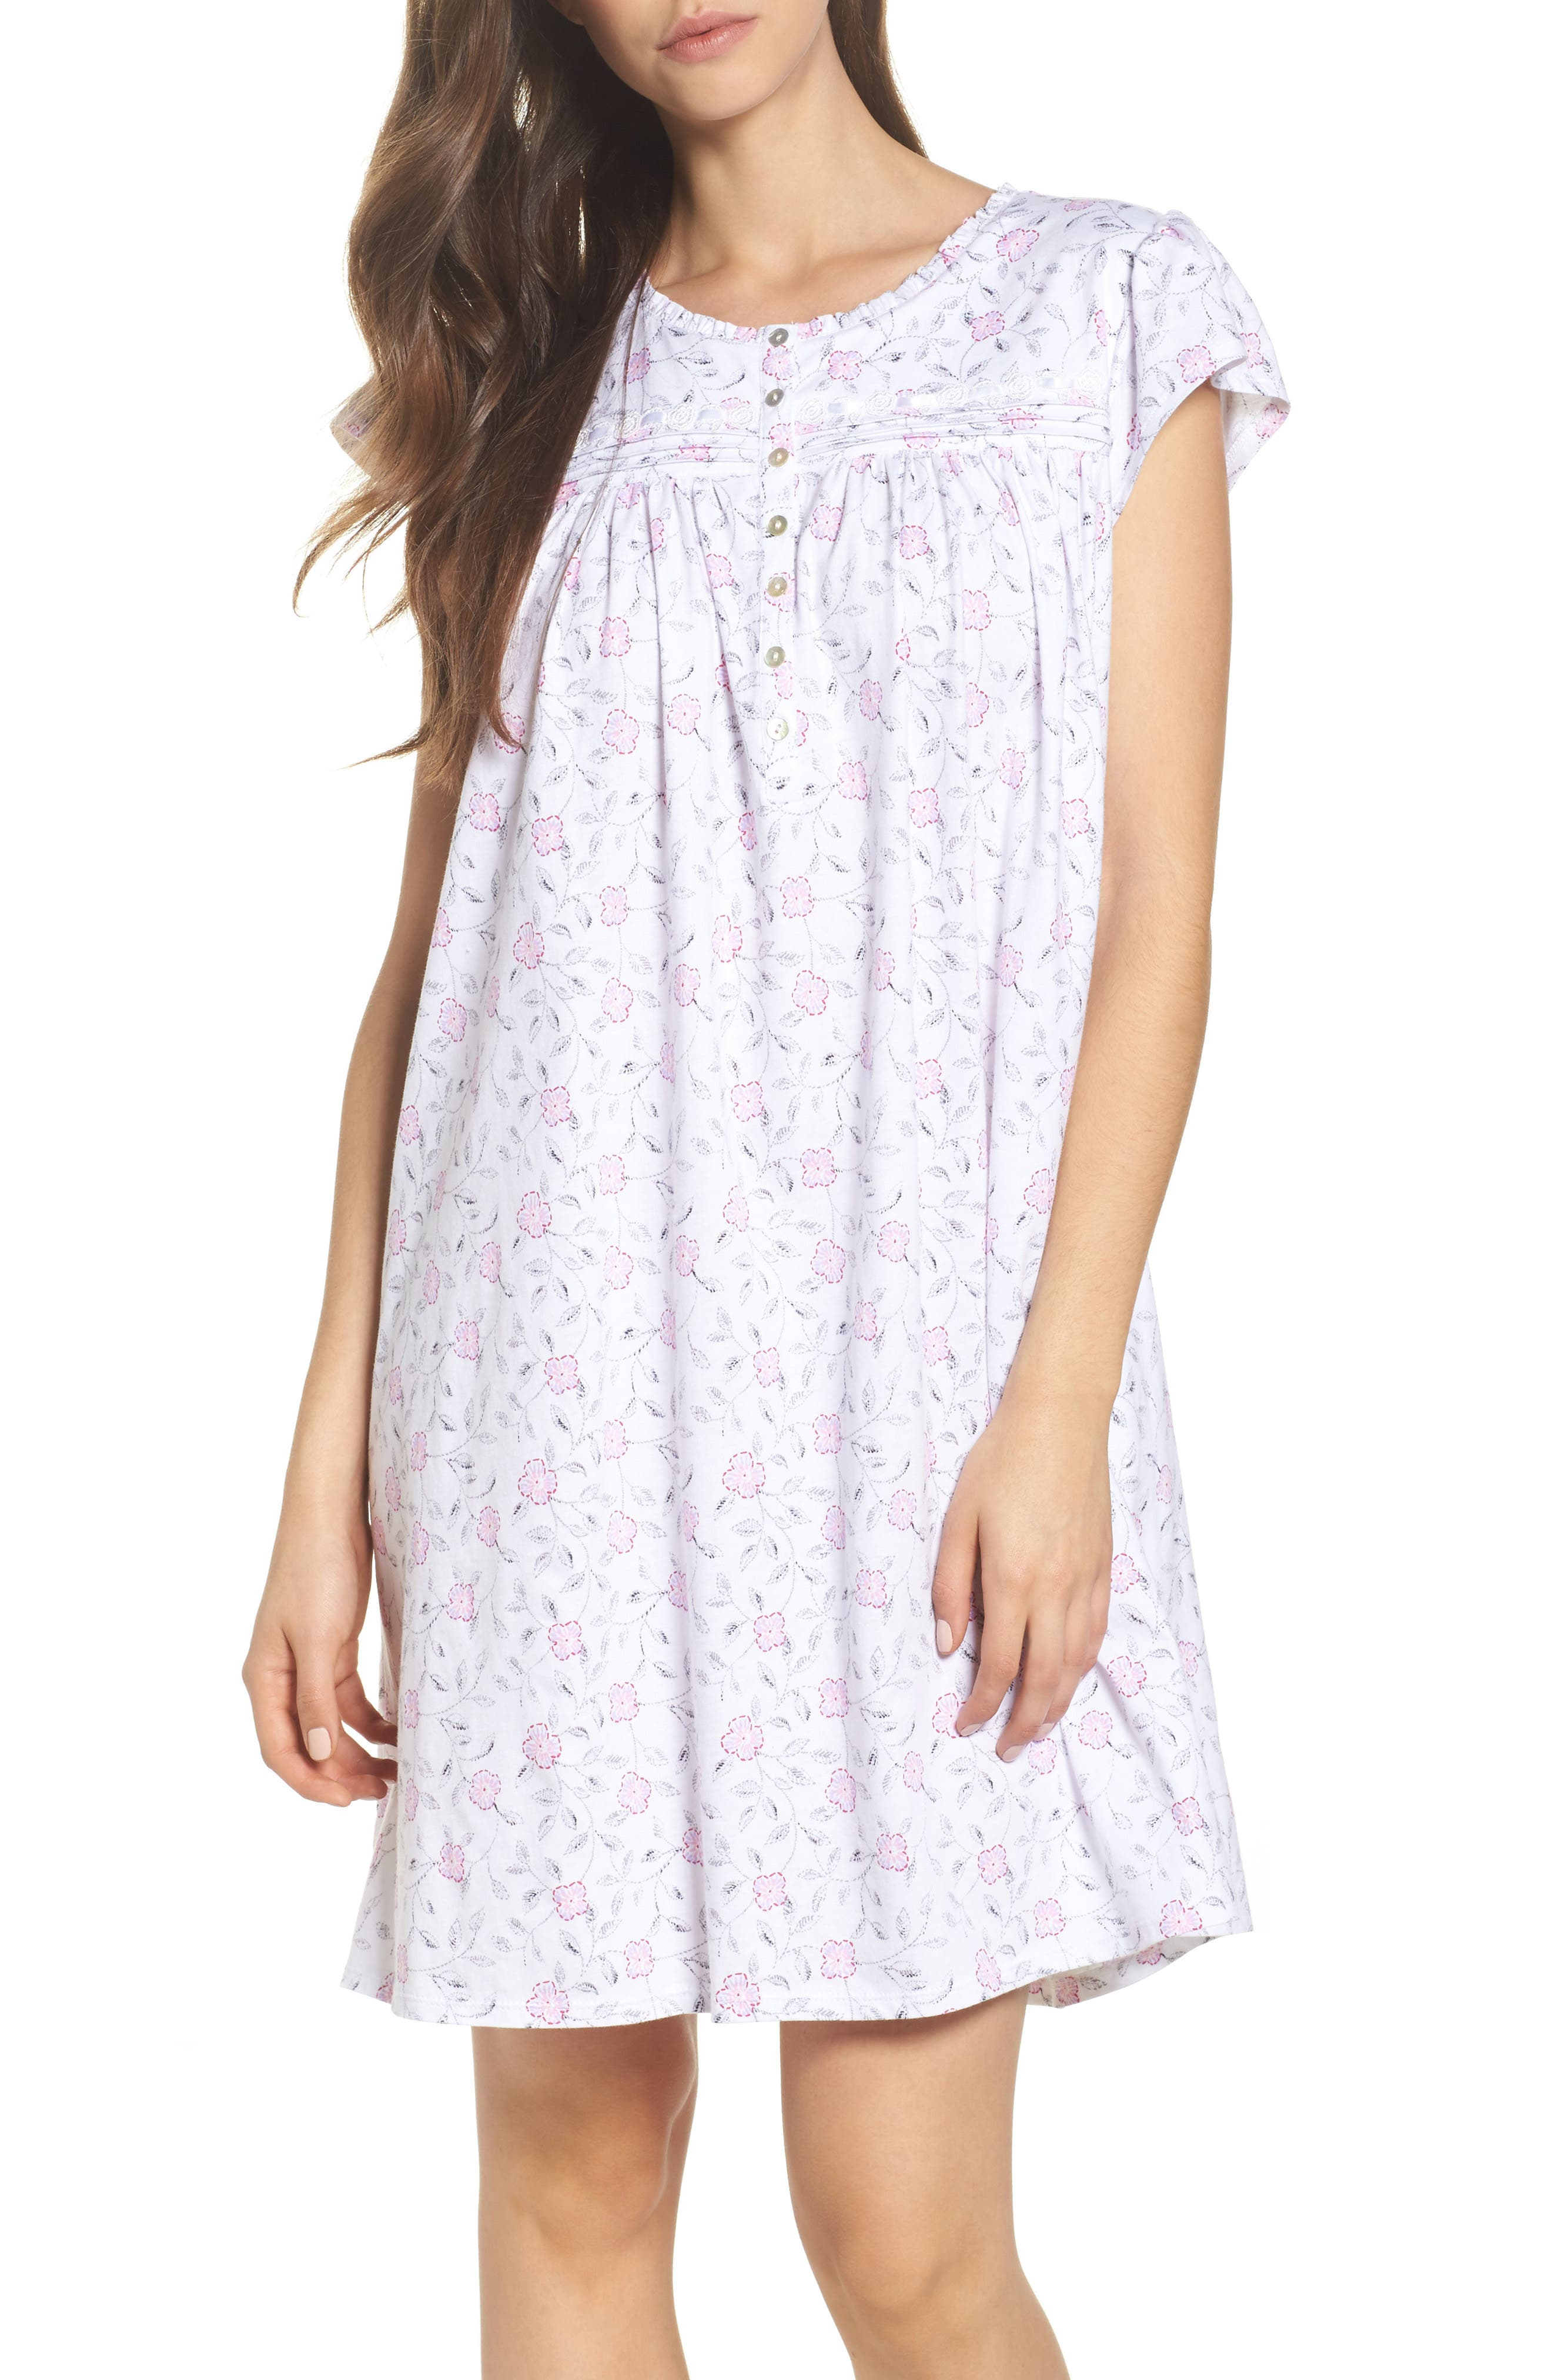 Cotton Jersey Nightgown,                             Main thumbnail 1, color,                             White Floral Scroll